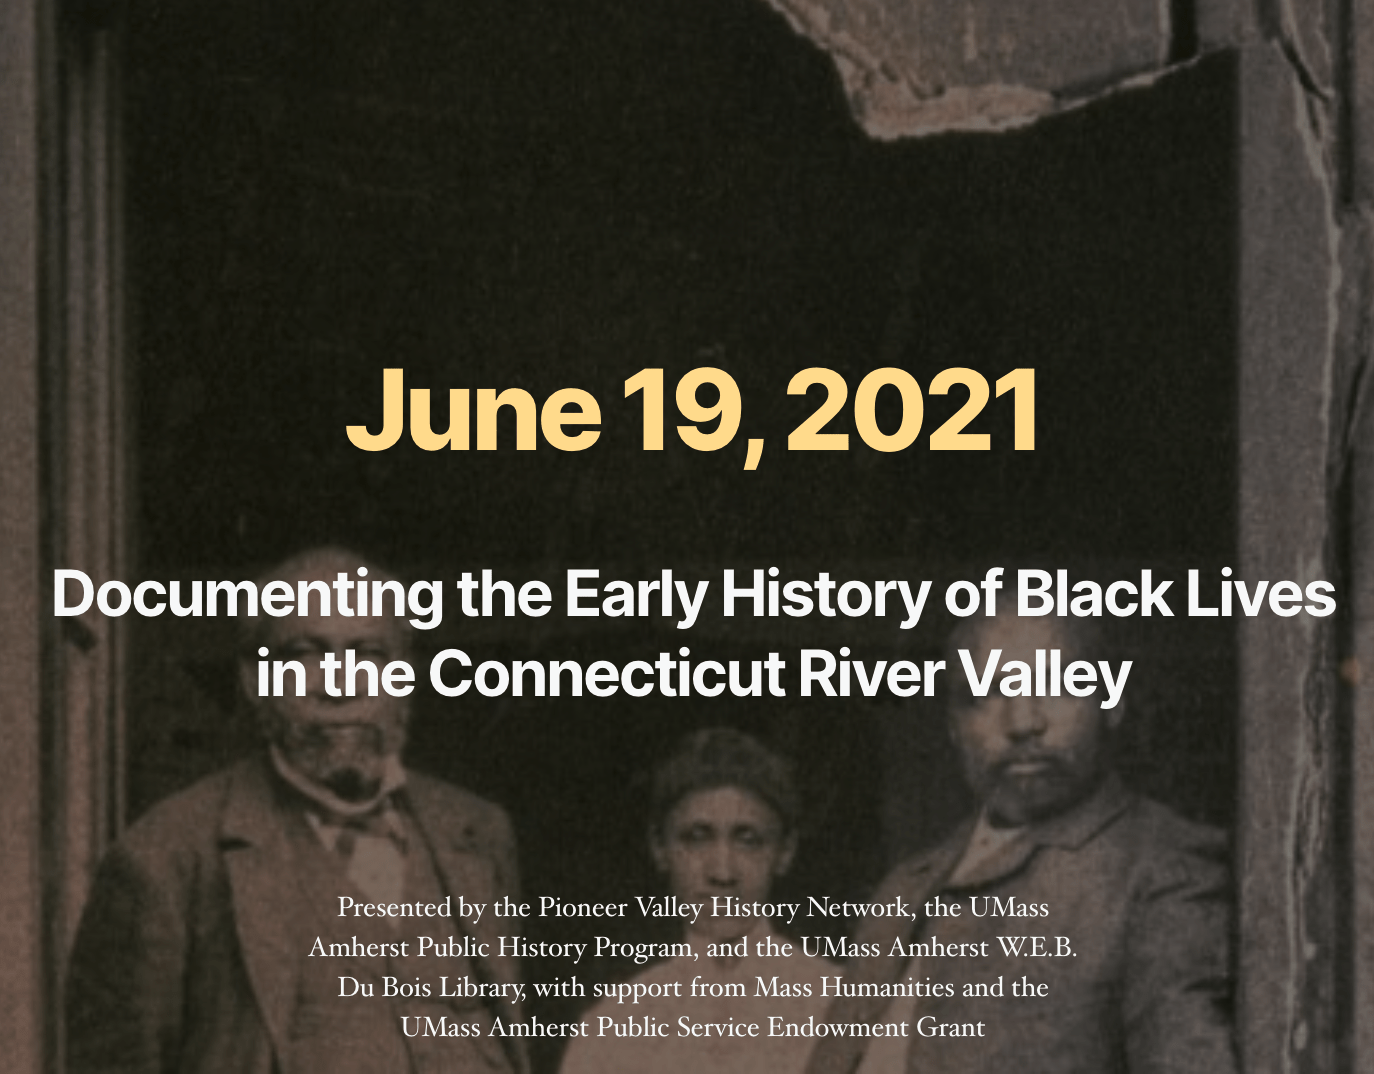 Early History of Black Lives in the Connecticut River Valley